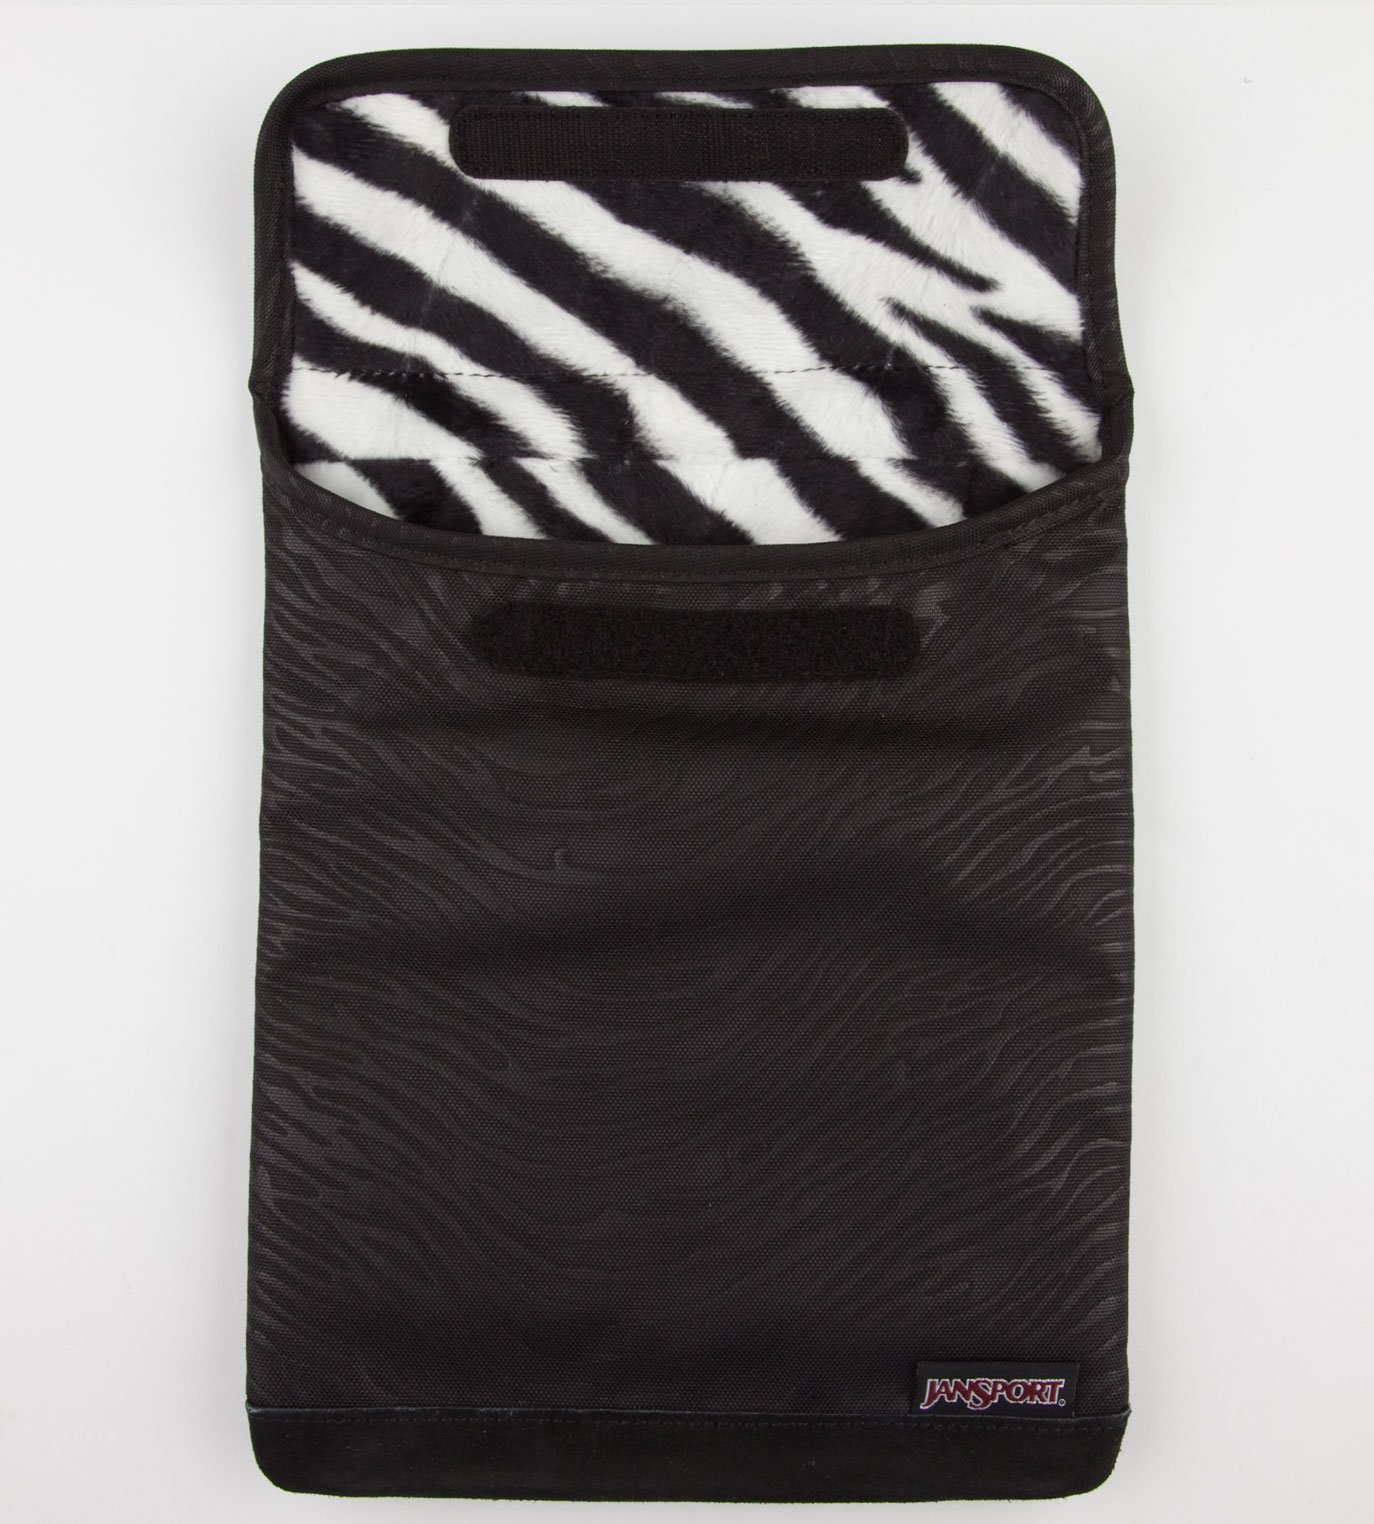 JanSport 2.0 Tablet Sleeve (Black Gloss Zebra) by JanSport (Image #3)